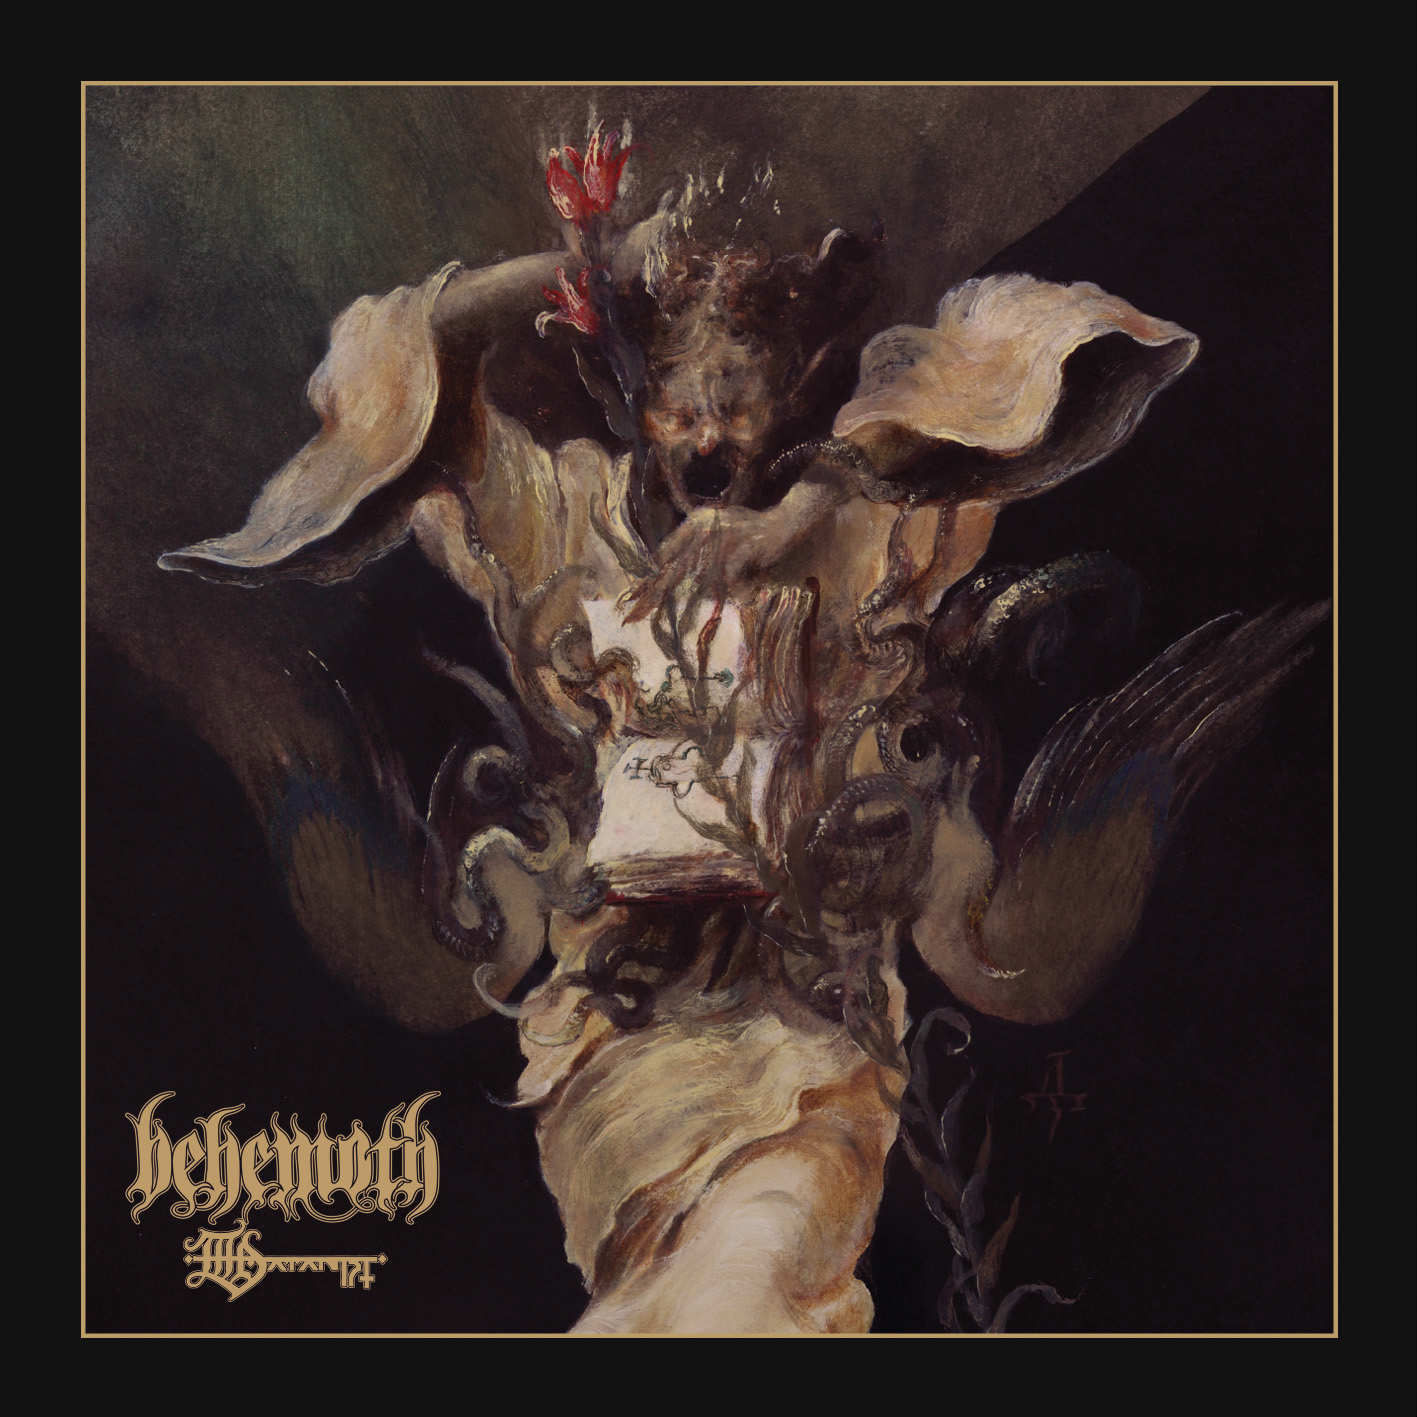 Behemoth: The Satanist